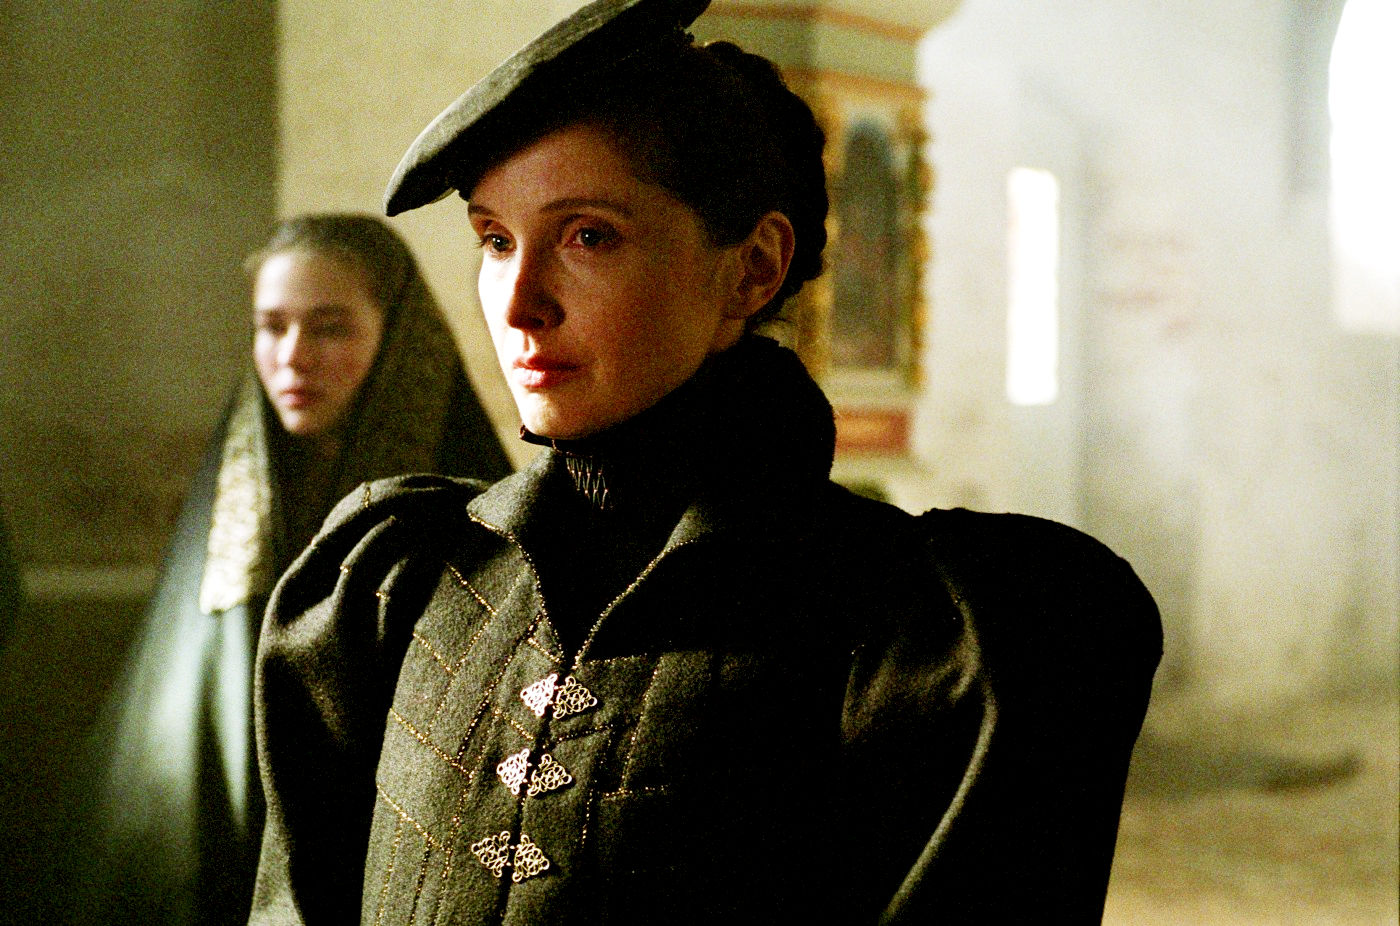 Director/star Julie Delpy as Countess Bathory in The Countess (2009)